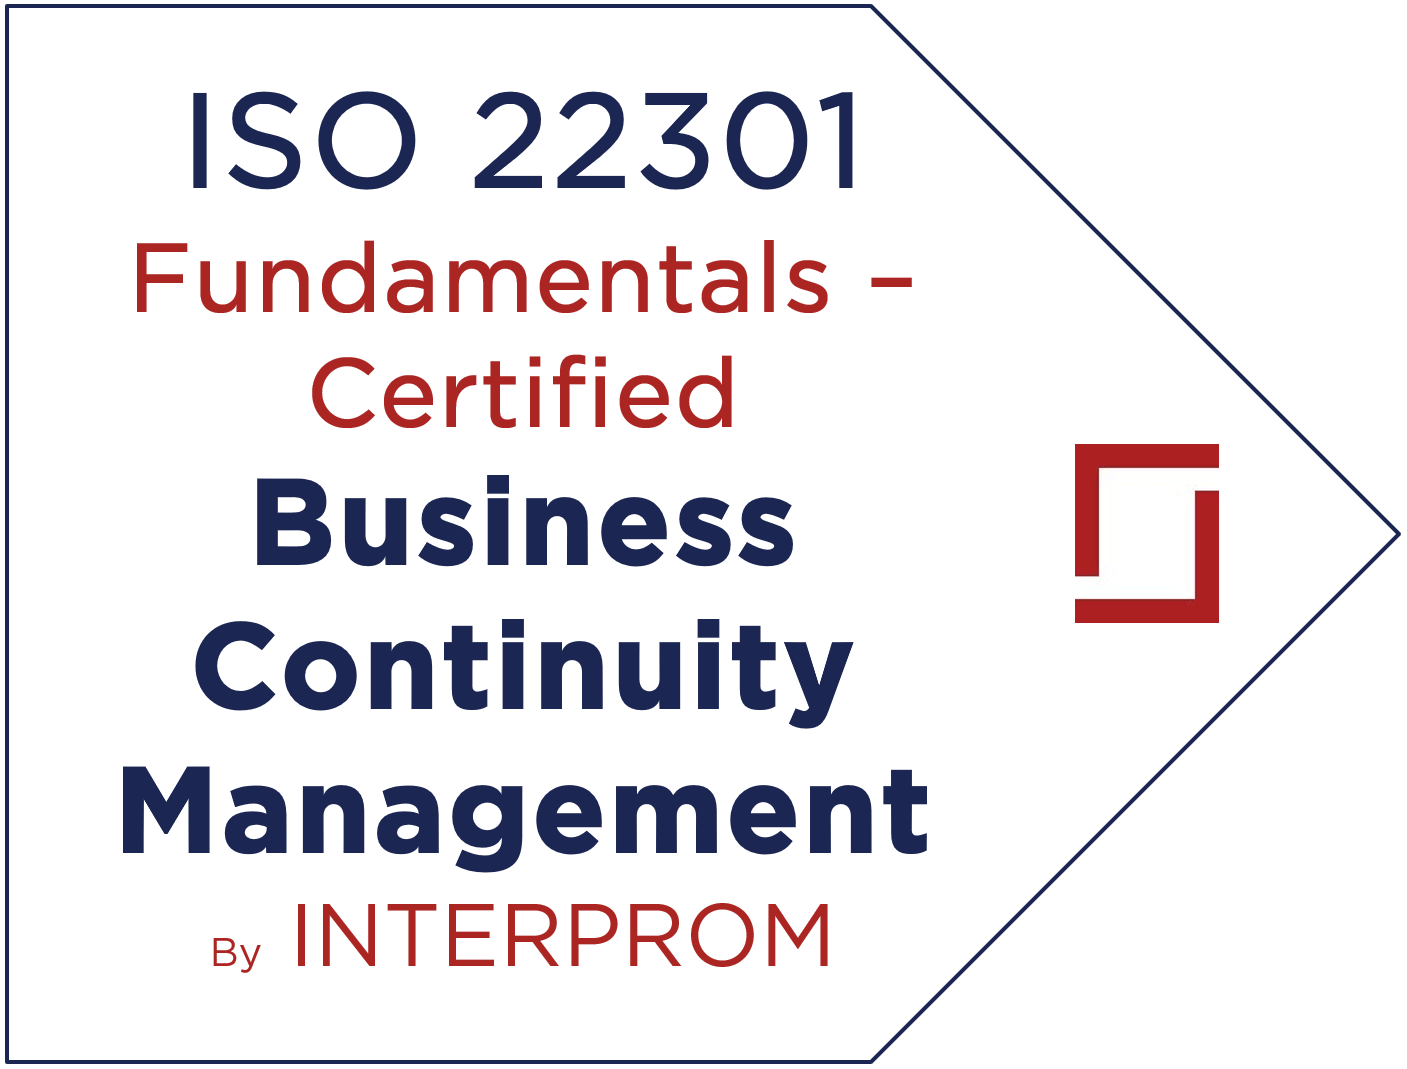 ISO 22301 Fundamentals – Business Continuity Management